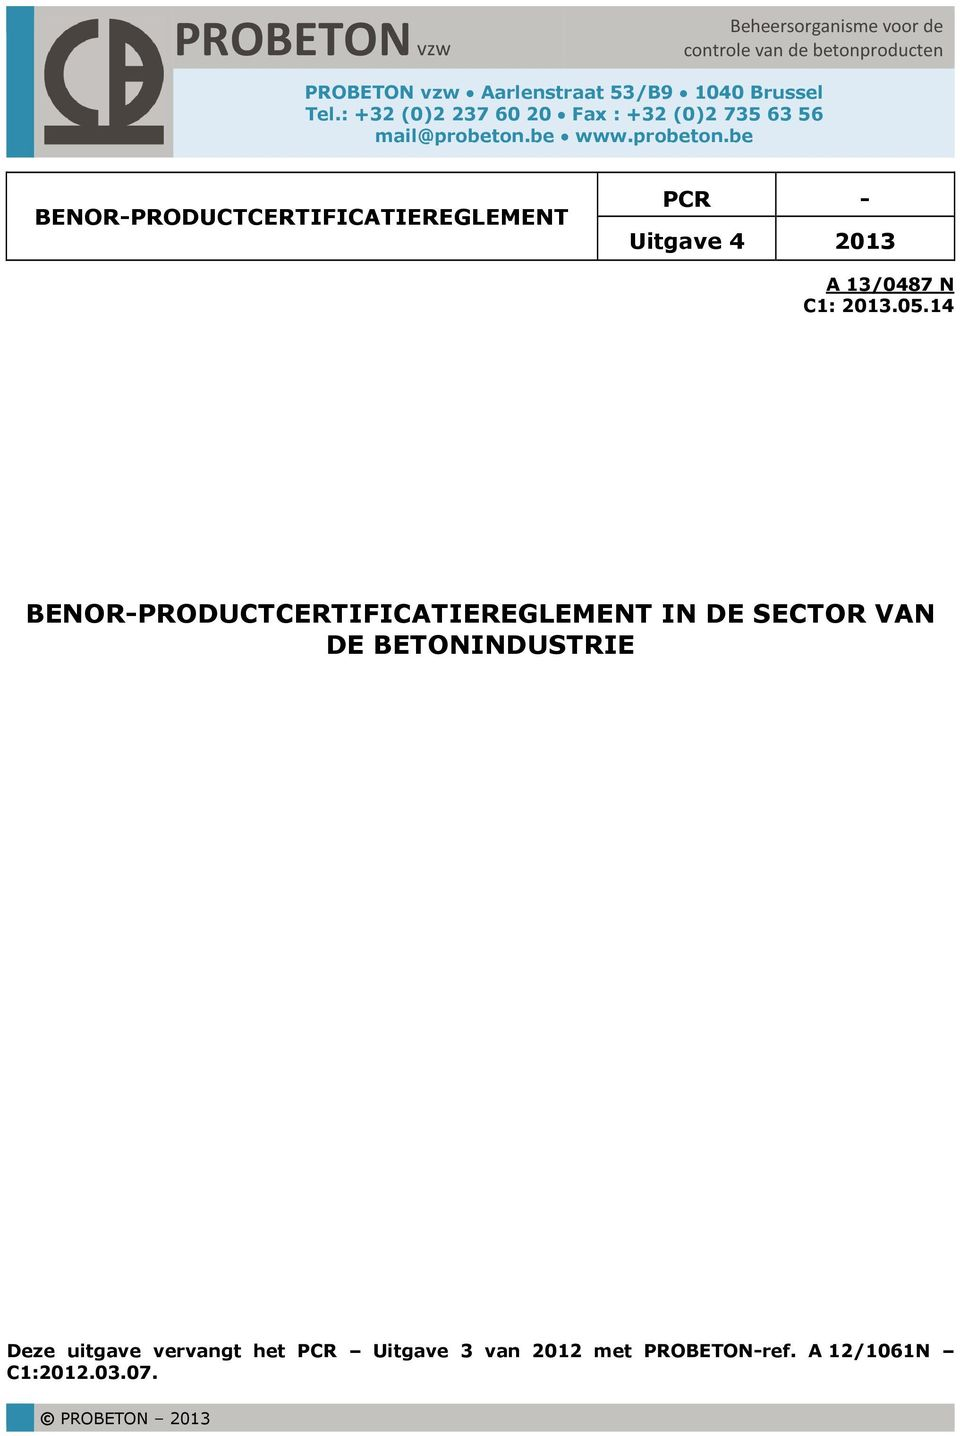 be www.probeton.be BENOR-PRODUCTCERTIFICATIEREGLEMENT PCR - Uitgave 4 2013 A 13/0487 N C1: 2013.05.